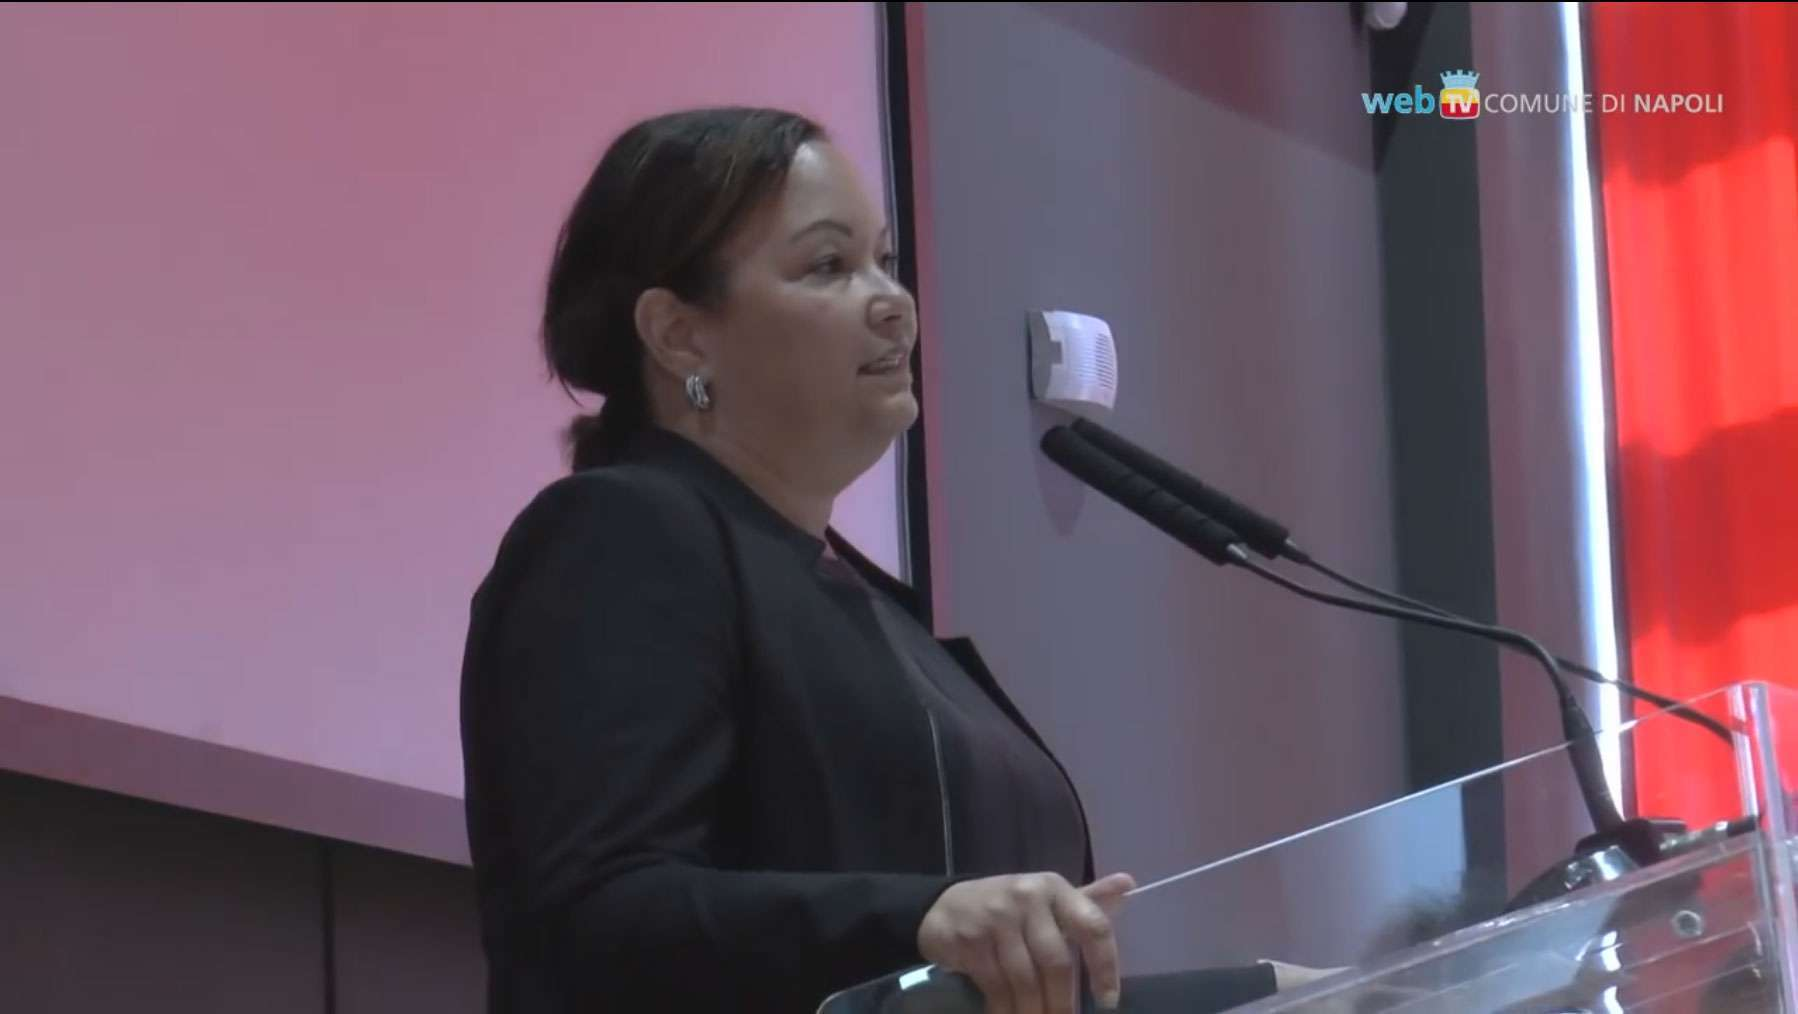 Il vicepresidente di Apple, Lisa Jackson